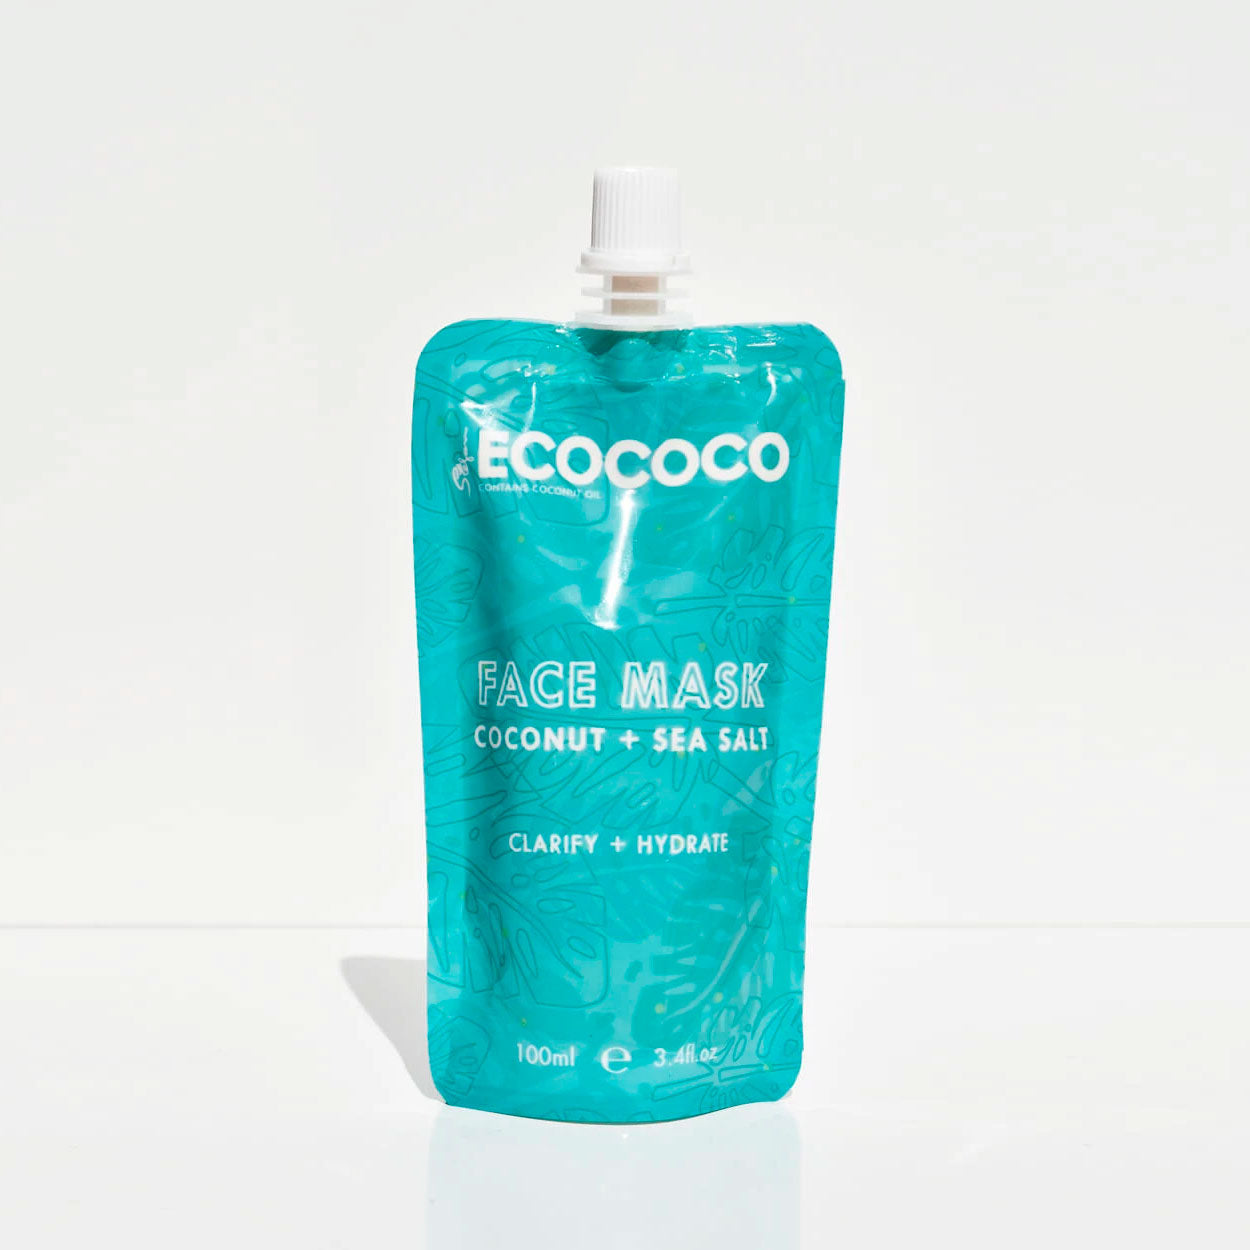 Squeezie Face Mask Coconut & Sea Salt | Ecococo